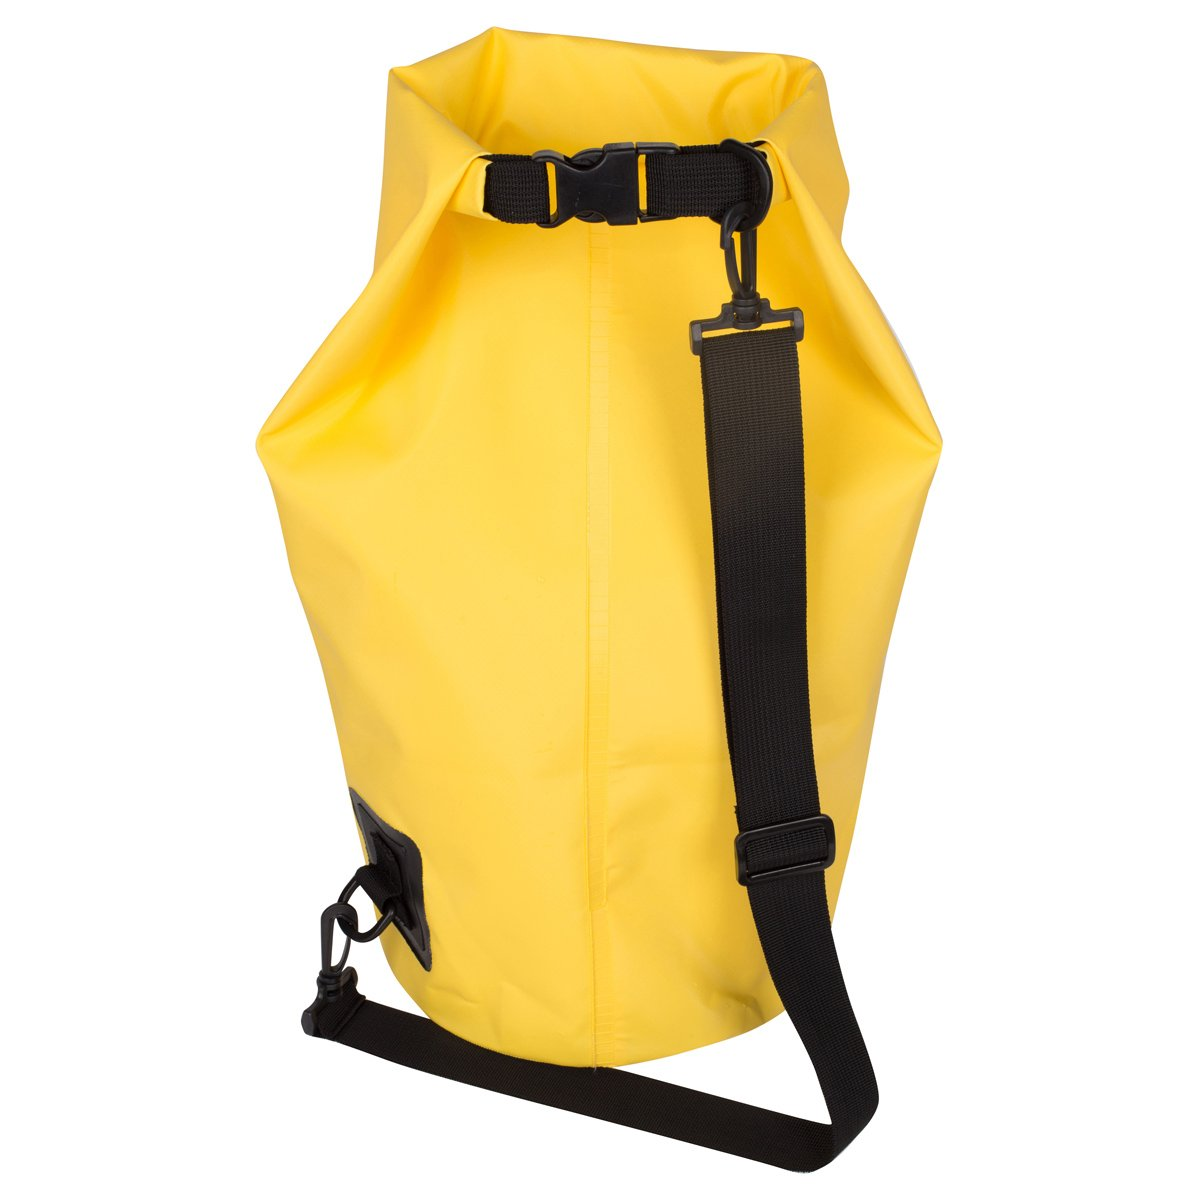 Kayaking 30L for Boating 500D PVC Fabric Rafting 10L Backpacking /& More 20L Waterproof Dry Bag Canoeing Hiking Watertight Roll-Top Closure /& Detachable Adjustable Shoulder Strap